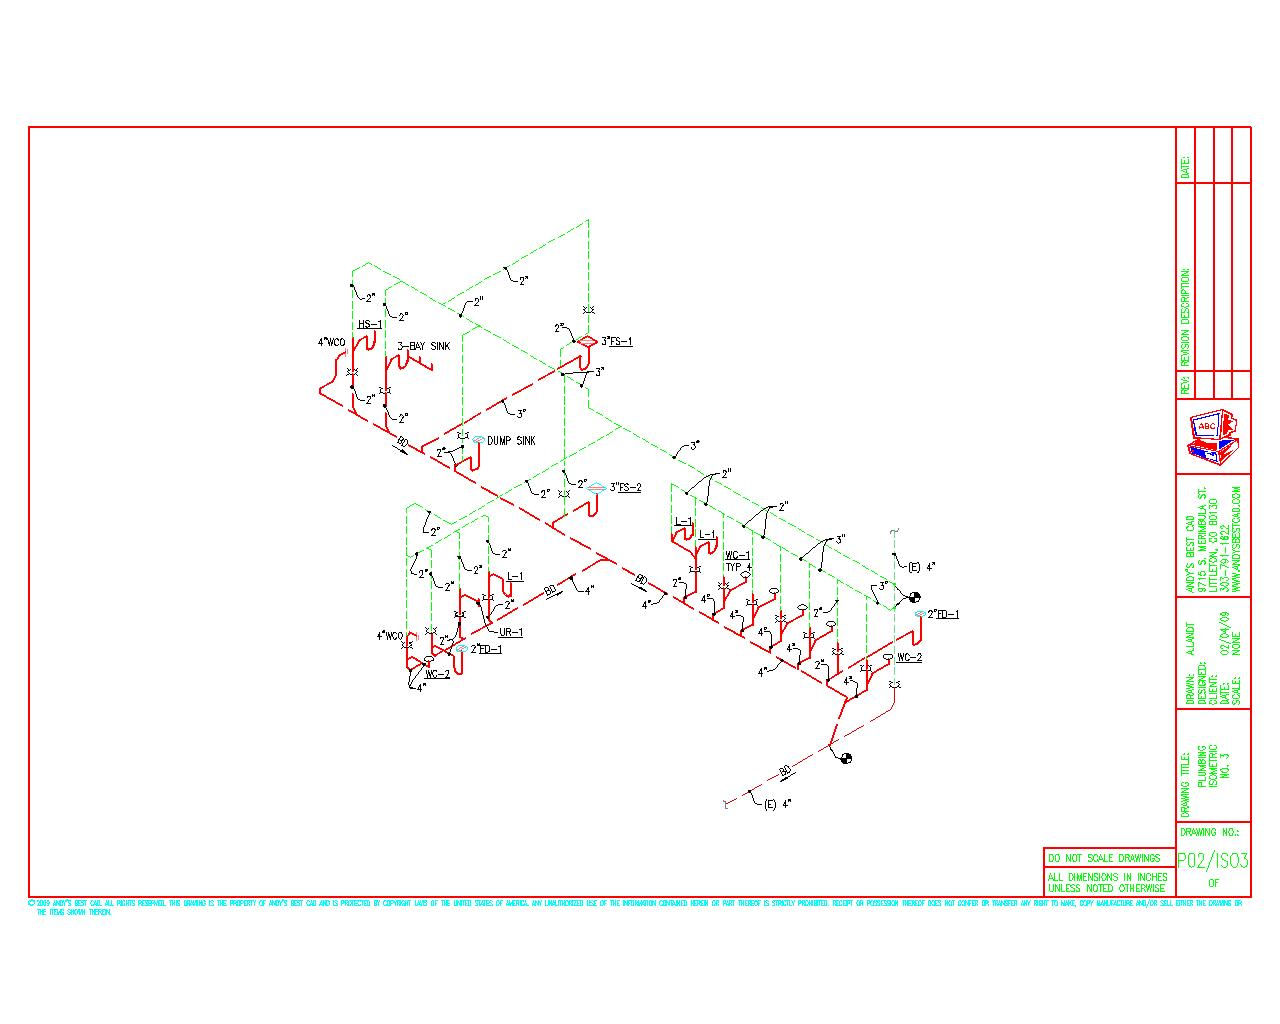 Piping Isometric Drawing Symbols Pdf At Free For Layout Notes 1280x1024 Autocad Plumbing Drafting Samples